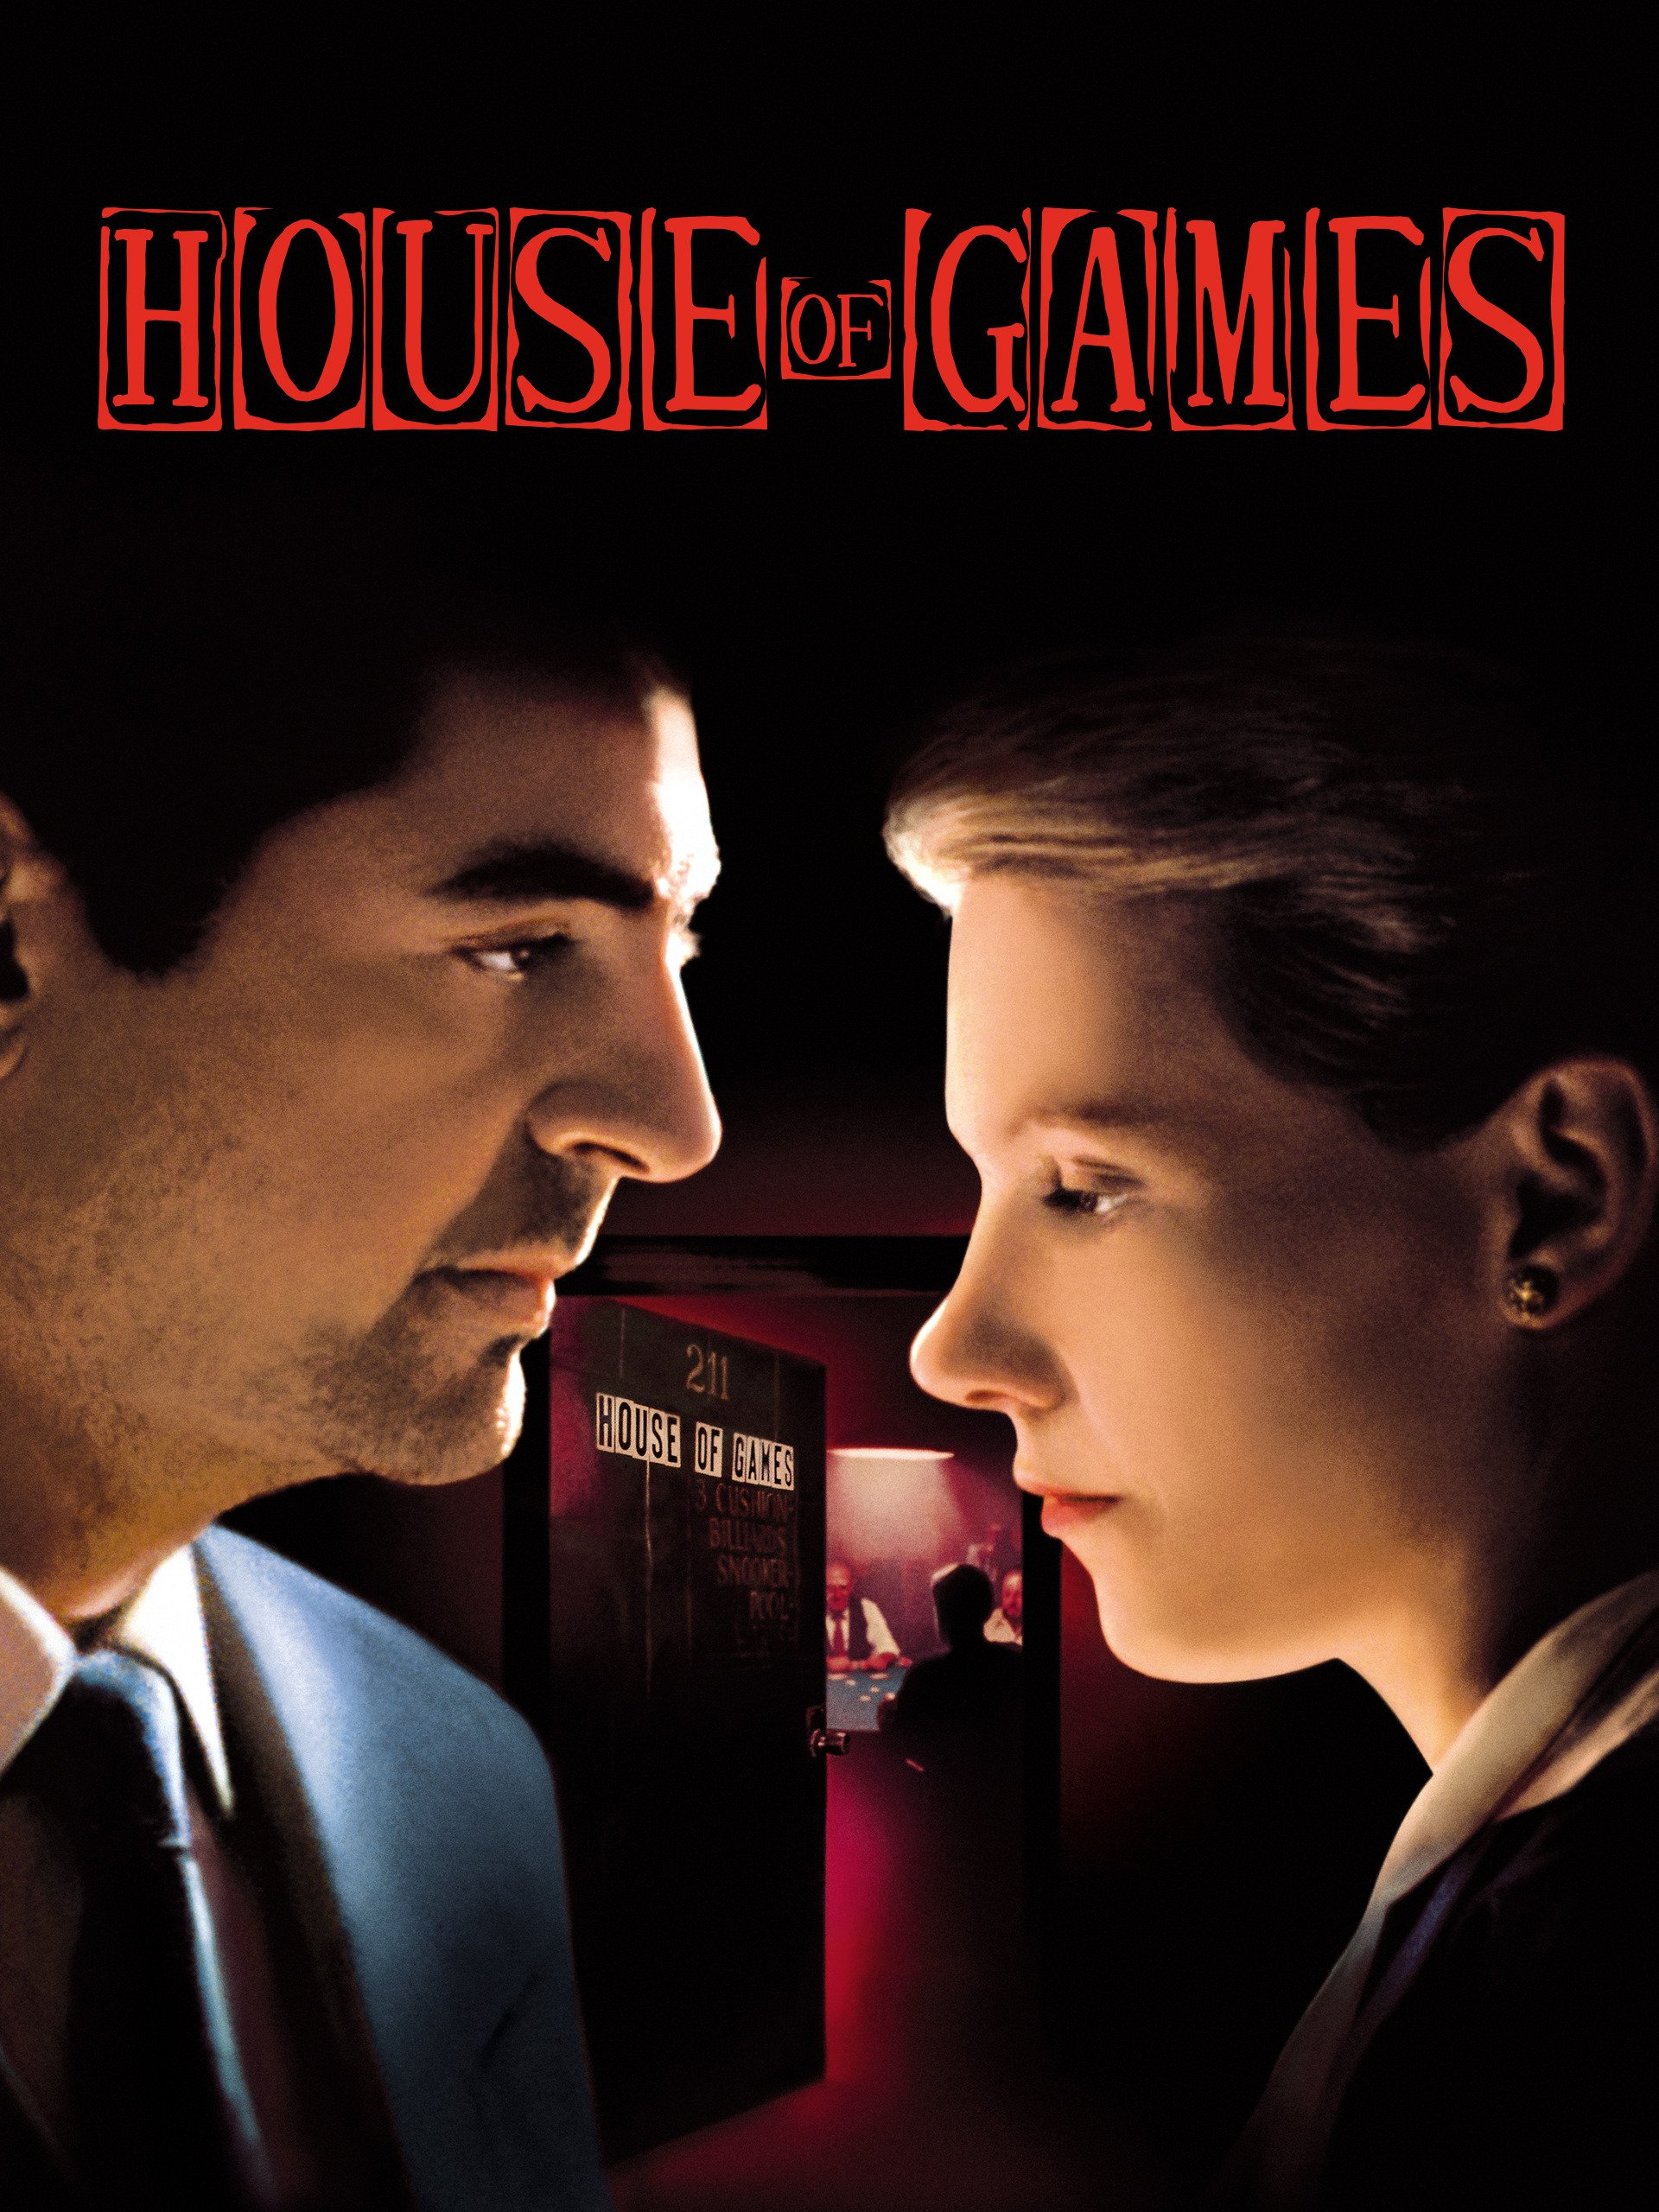 House of Games (1987) - Directed by: David MametStarring: Lindsay Crouse, Joe Mantegna, Mike Nussbaum, William H MacyRated: RRunning Time: 1 h 42 mTMM Score: 4 stars out of 5STRENGTHS: Writing, DirectingWEAKNESSES: Acting